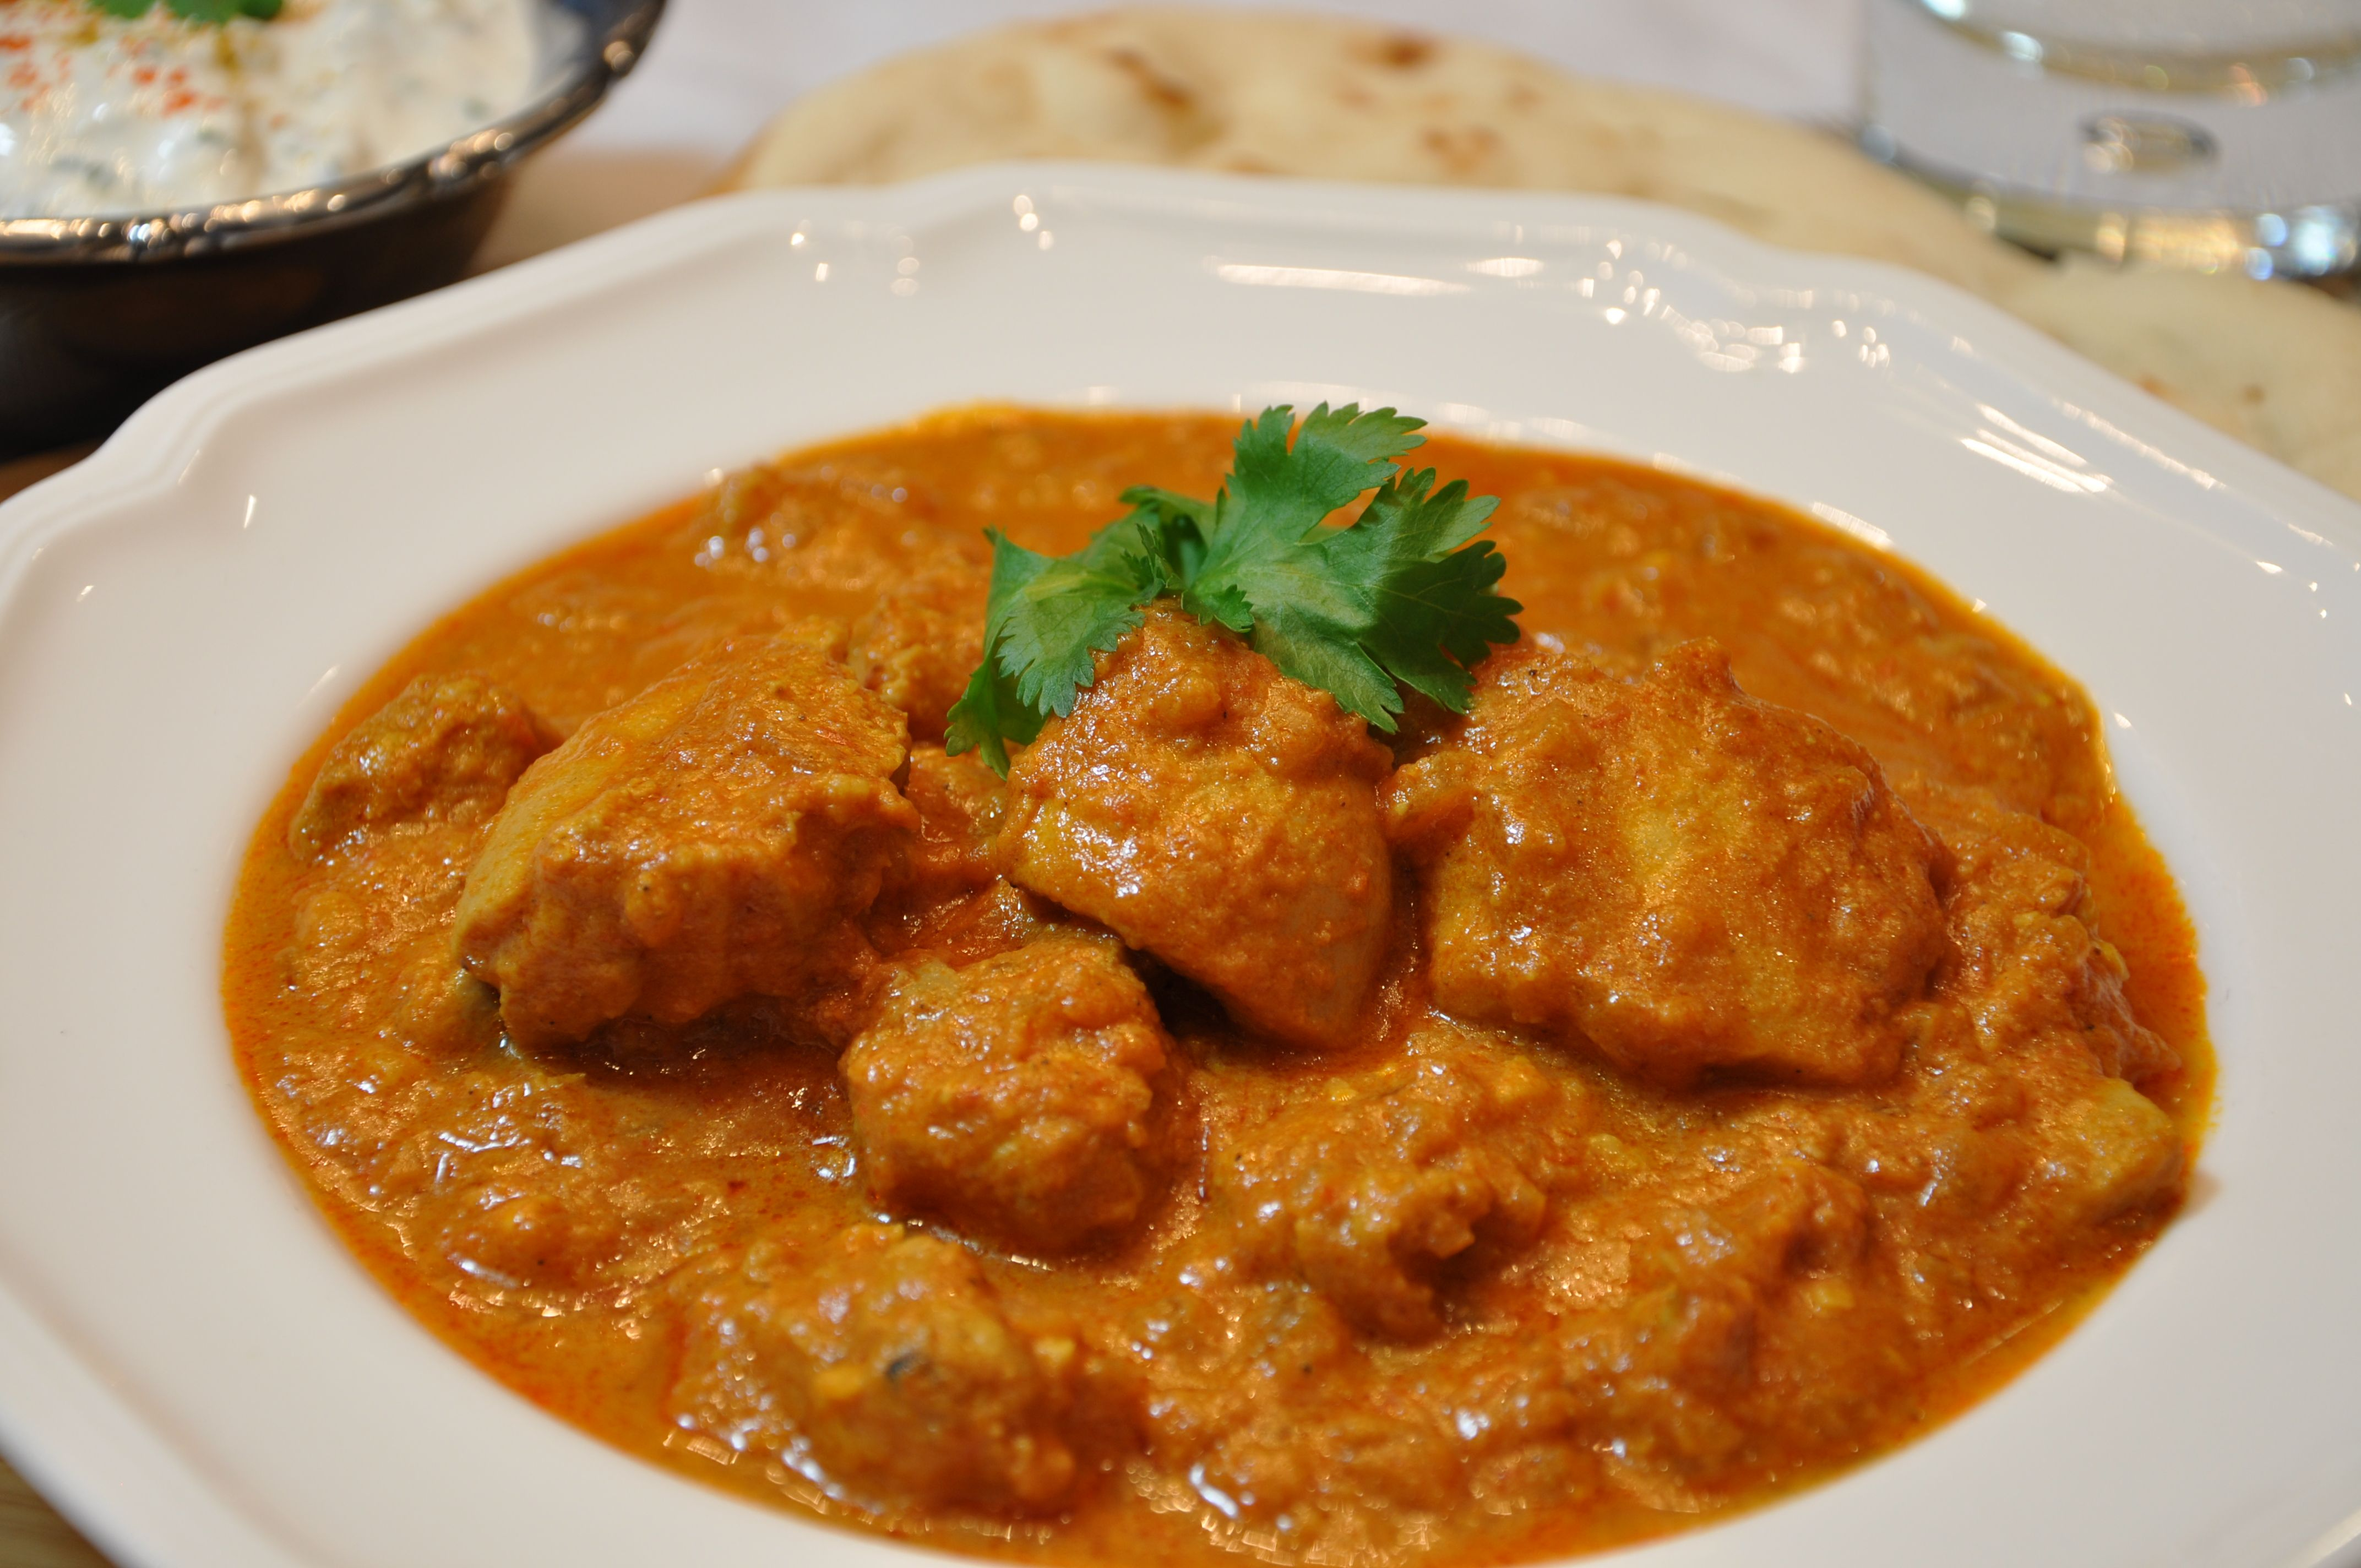 Chicken tikka masala healthier version recipes chicken chicken tikka masala recipe is one of the most relished and savored recipe across the nation simplified tough query of how to make chicken tikka masala forumfinder Image collections